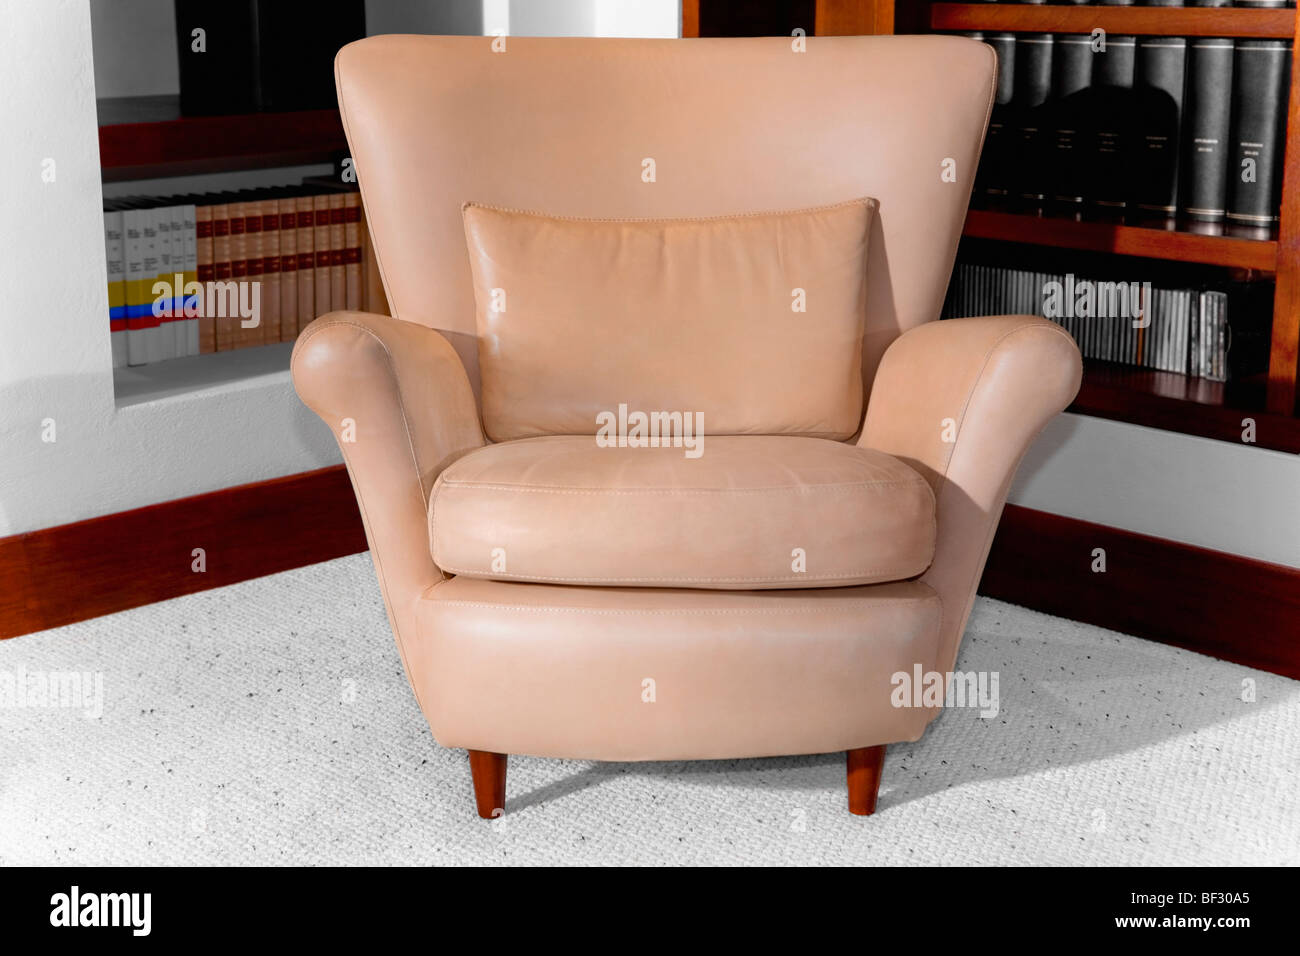 Armchair in a living room - Stock Image